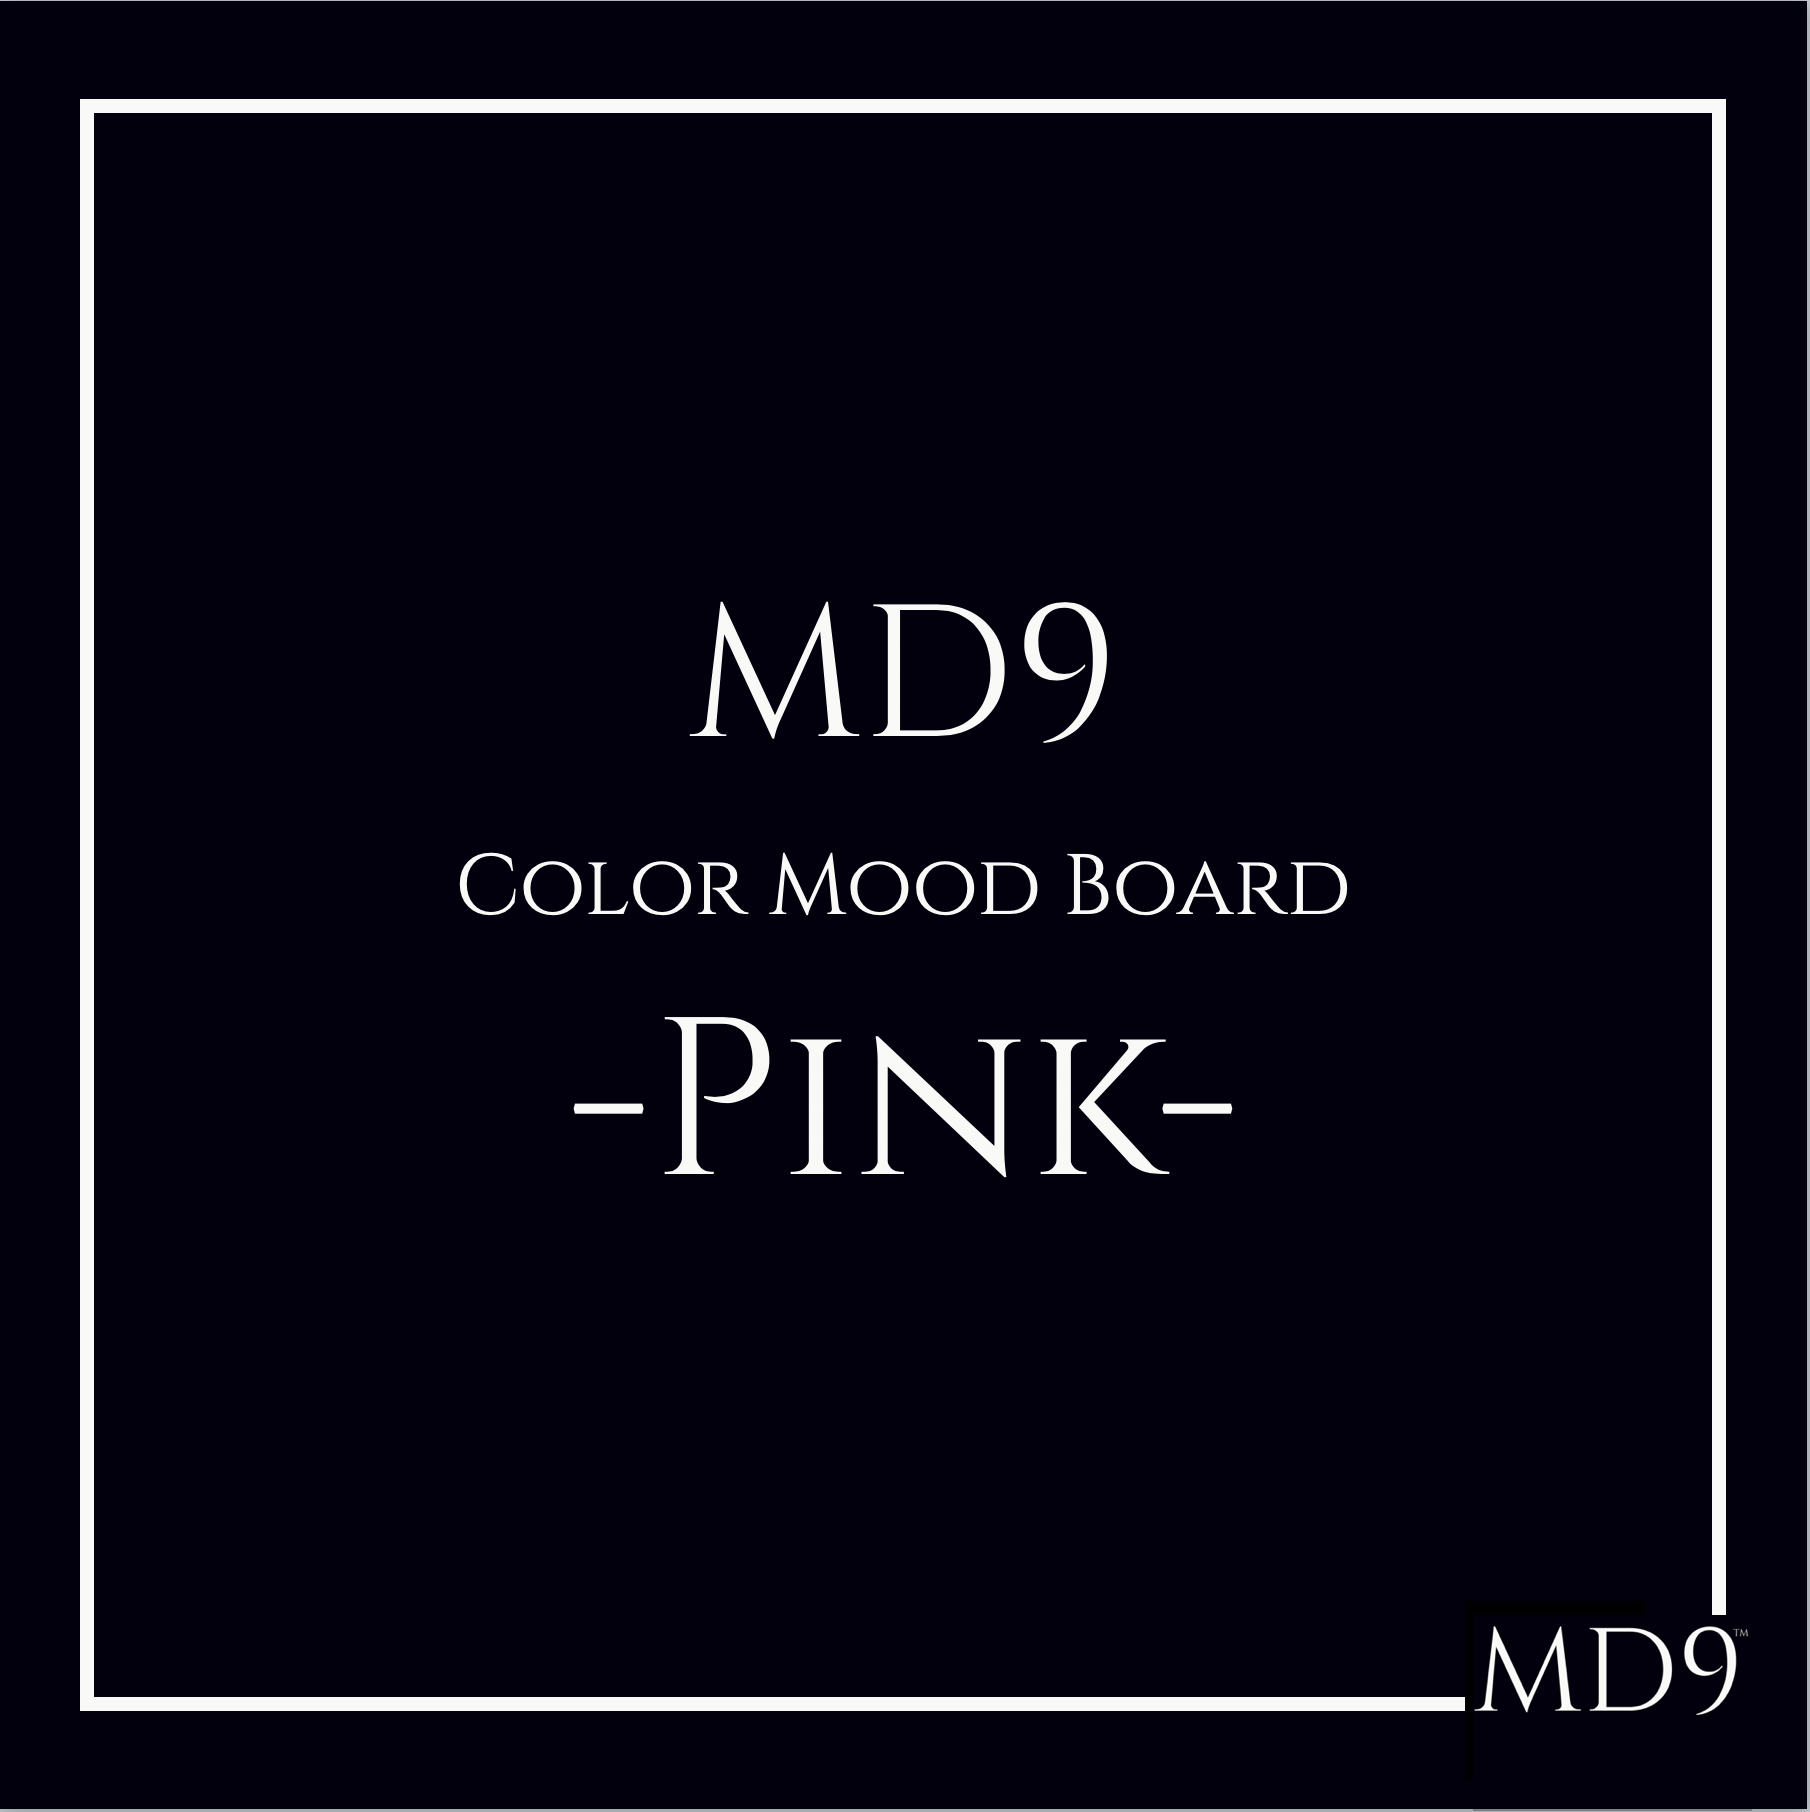 MD9's Colors Mood Board – Pink